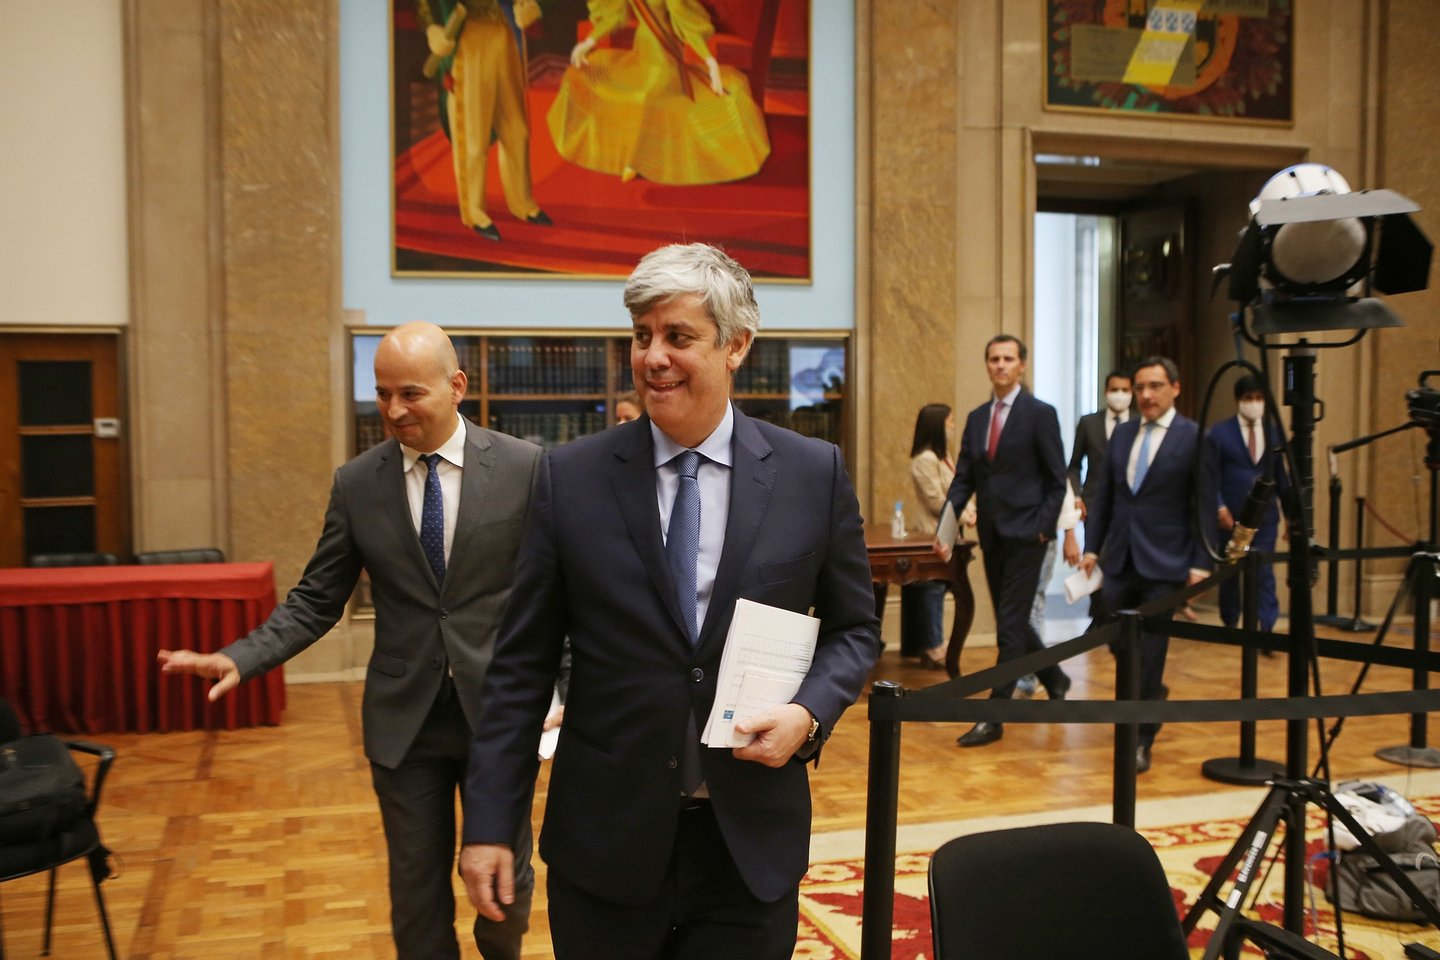 The Minister of State and Finance, Mário Centeno (C), flanked by the Secretary of State for the Budget, João Leão (L), on arrival for the presentation of the Supplementary Budget 2020 at the Salão Nobre of the Ministry of Finance, in Lisbon, June 9, 2020. After five years as António Costa's Minister of Finance, Mário Centeno will leave the Government, being replaced from next Monday by João Leão, current Secretary of State for the Budget. ANTÓNIO PEDRO SANTOS/LUSA